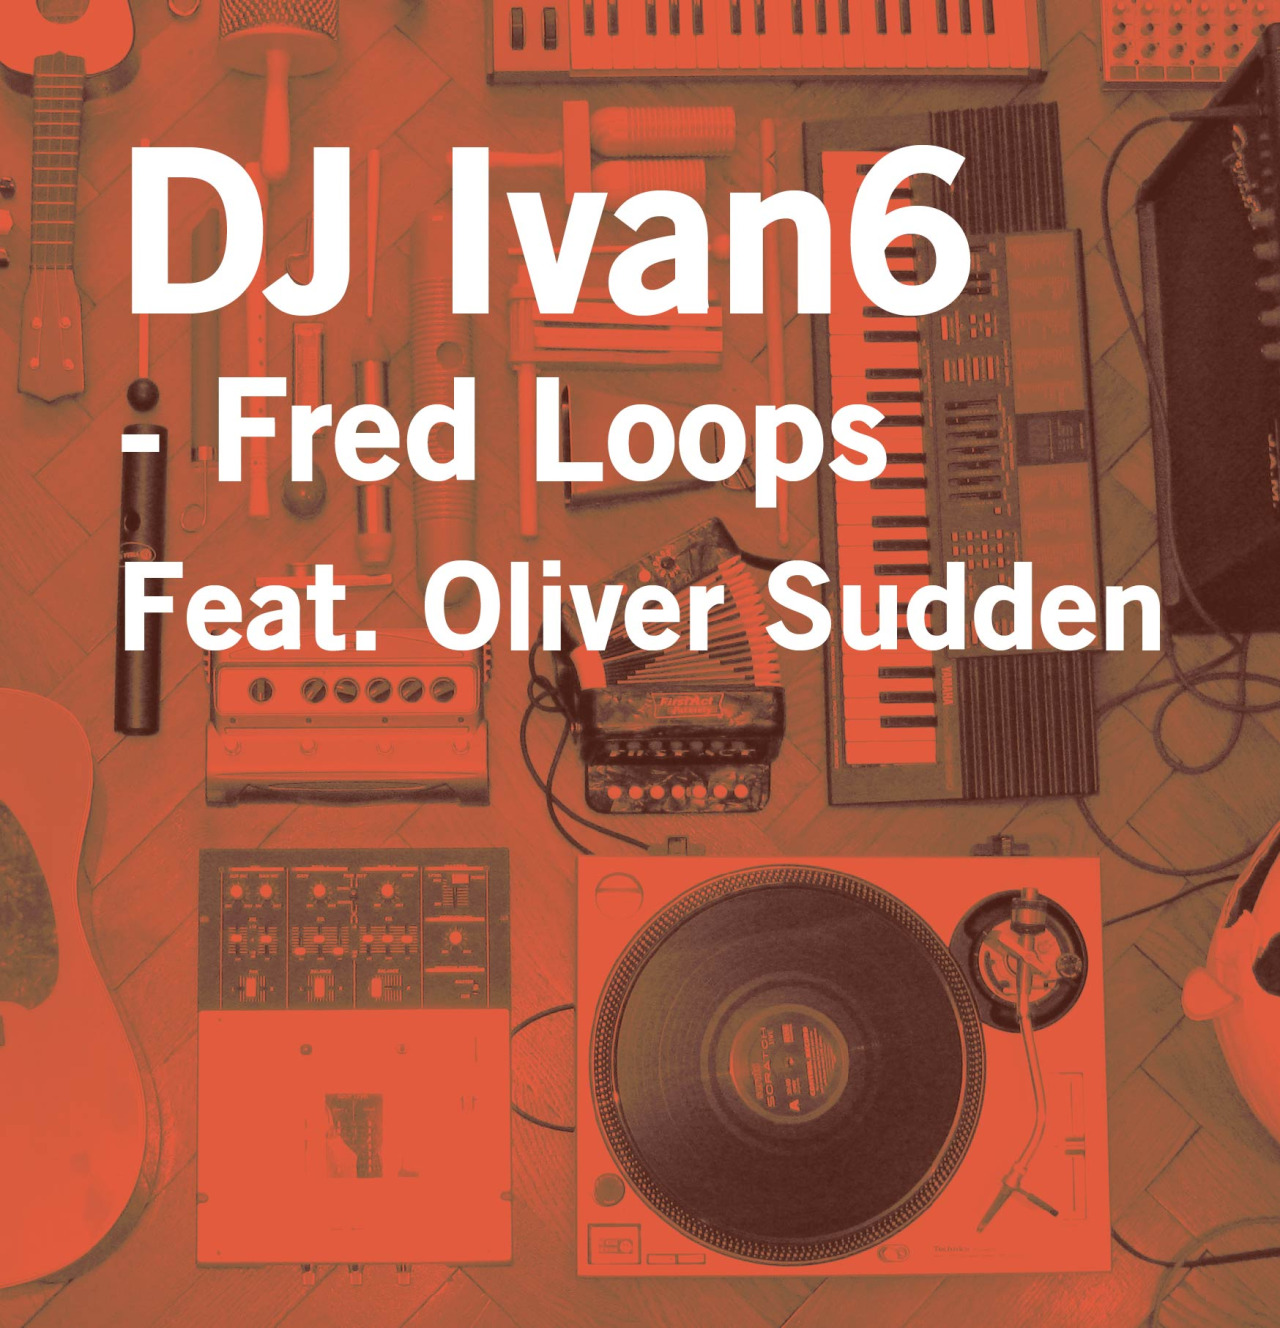 "DJ Ivan6 - Fred Loops Feat. Oliver Sudden         ""Looping that real wax. Peace to Oliver Sudden for the dangerous raps.      High fives to Oliver Sudden, Holdin' Court, JustGot, KaneFM and to all the UK Hip Hop heads on Earth.     Peace""      HERE"